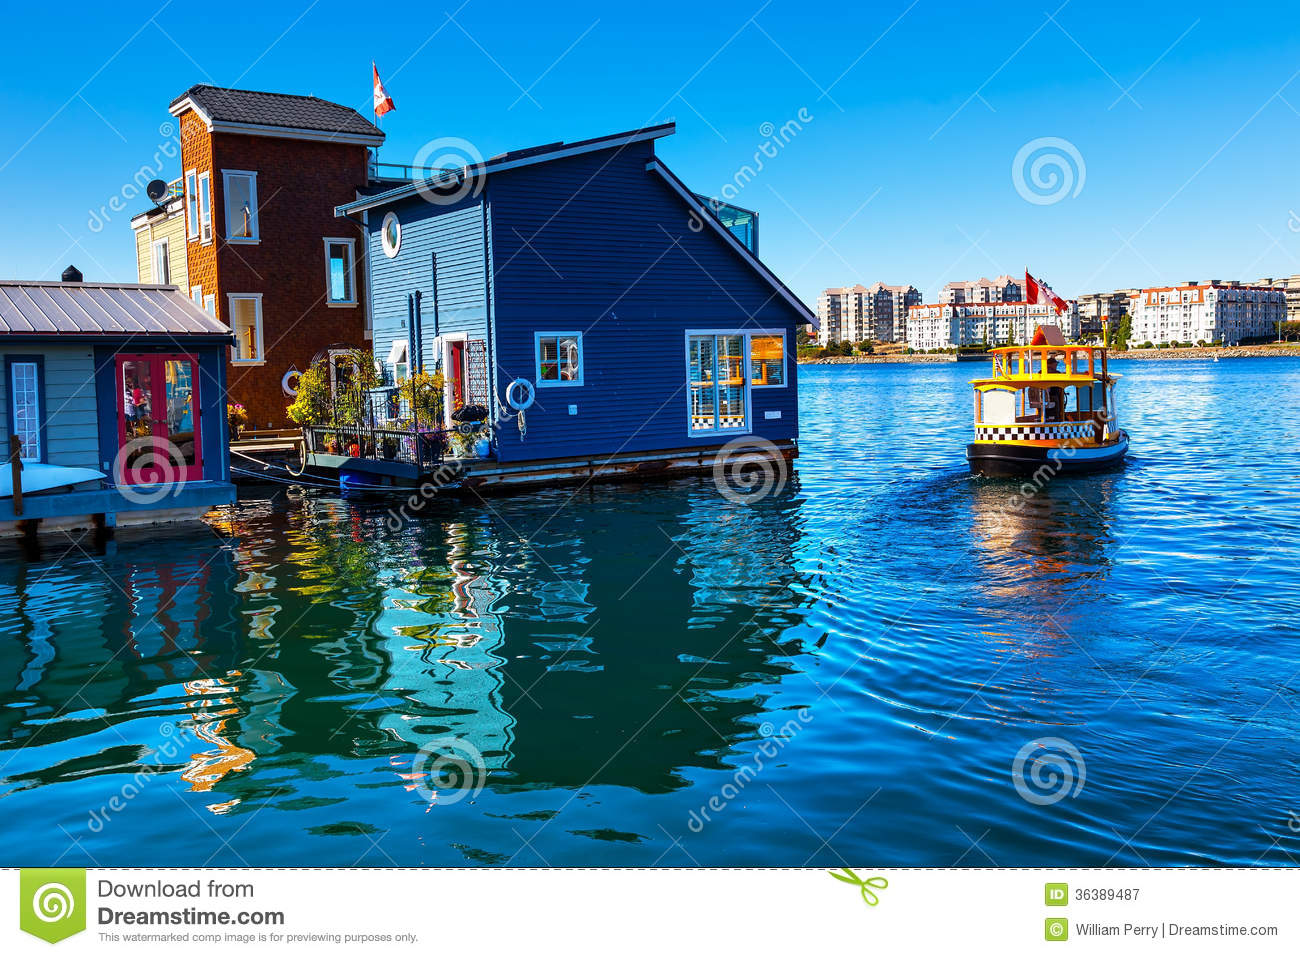 Water Taxi Blue Houseboats Victoria Canada Stock Image - Image of ...